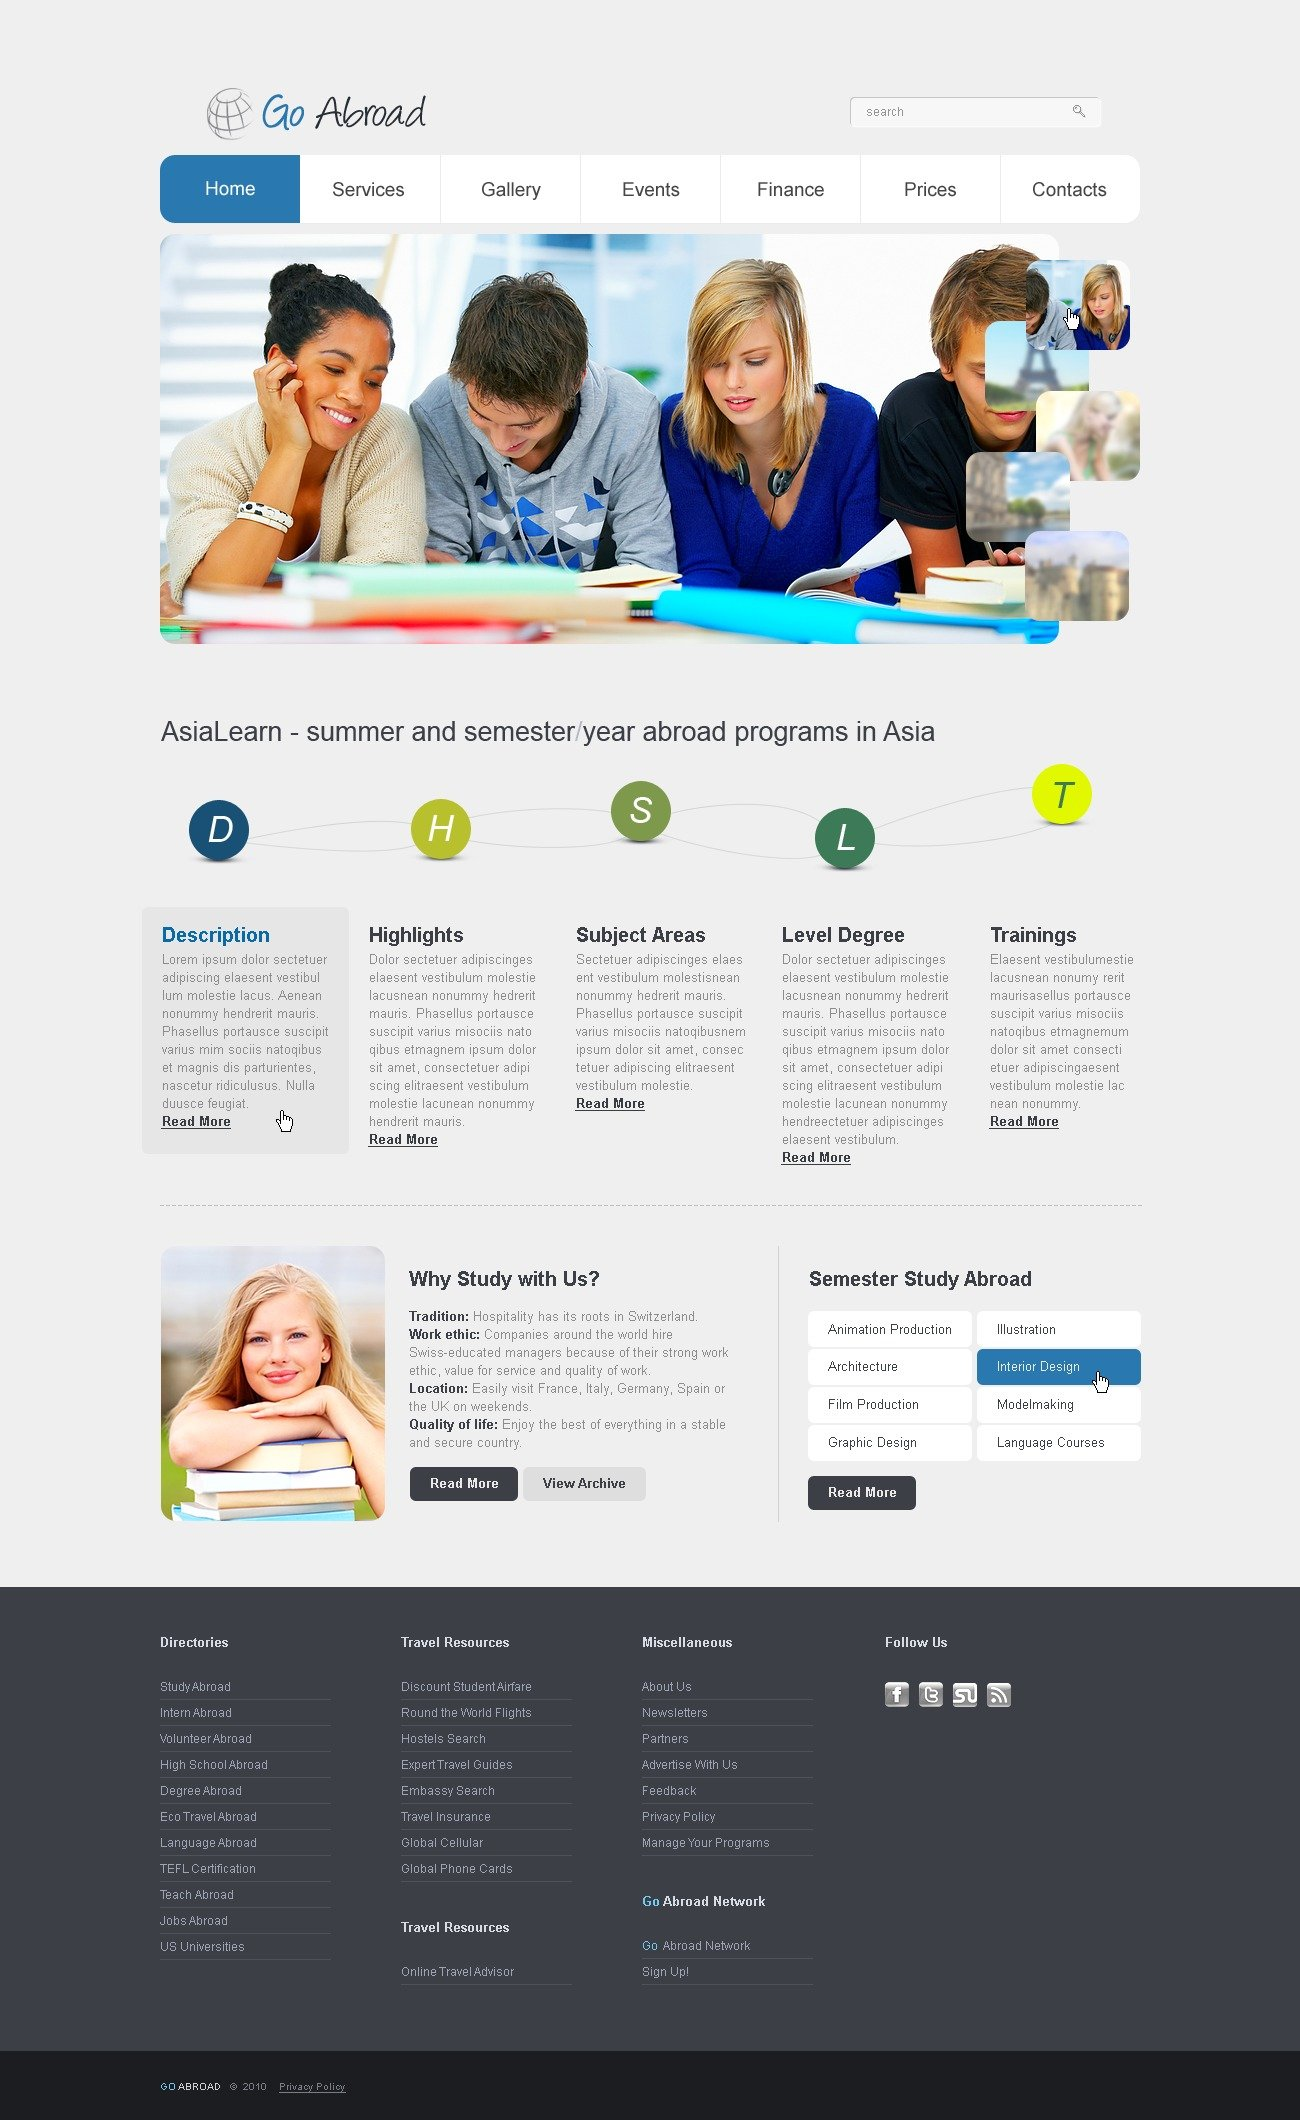 The Go Abroad PSD Design 54460, one of the best PSD templates of its kind (education, flash 8, wide), also known as go abroad PSD template, learning PSD template, education center PSD template, college PSD template, science PSD template, admission PSD template, faculty PSD template, department PSD template, class PSD template, alumni PSD template, student PSD template, professor PSD template, enrollment PSD template, union PSD template, library PSD template, auditorium PSD template, graduate PSD template, direction PSD template, tests PSD template, entrance PSD template, examination PSD template, exam PSD template, sport PSD template, community PSD template, party PSD template, administration PSD template, rector PSD template, head PSD template, dean PSD template, co and related with go abroad, learning, education center, college, science, admission, faculty, department, class, alumni, student, professor, enrollment, union, library, auditorium, graduate, direction, tests, entrance, examination, exam, sport, community, party, administration, rector, head, dean, co, etc.